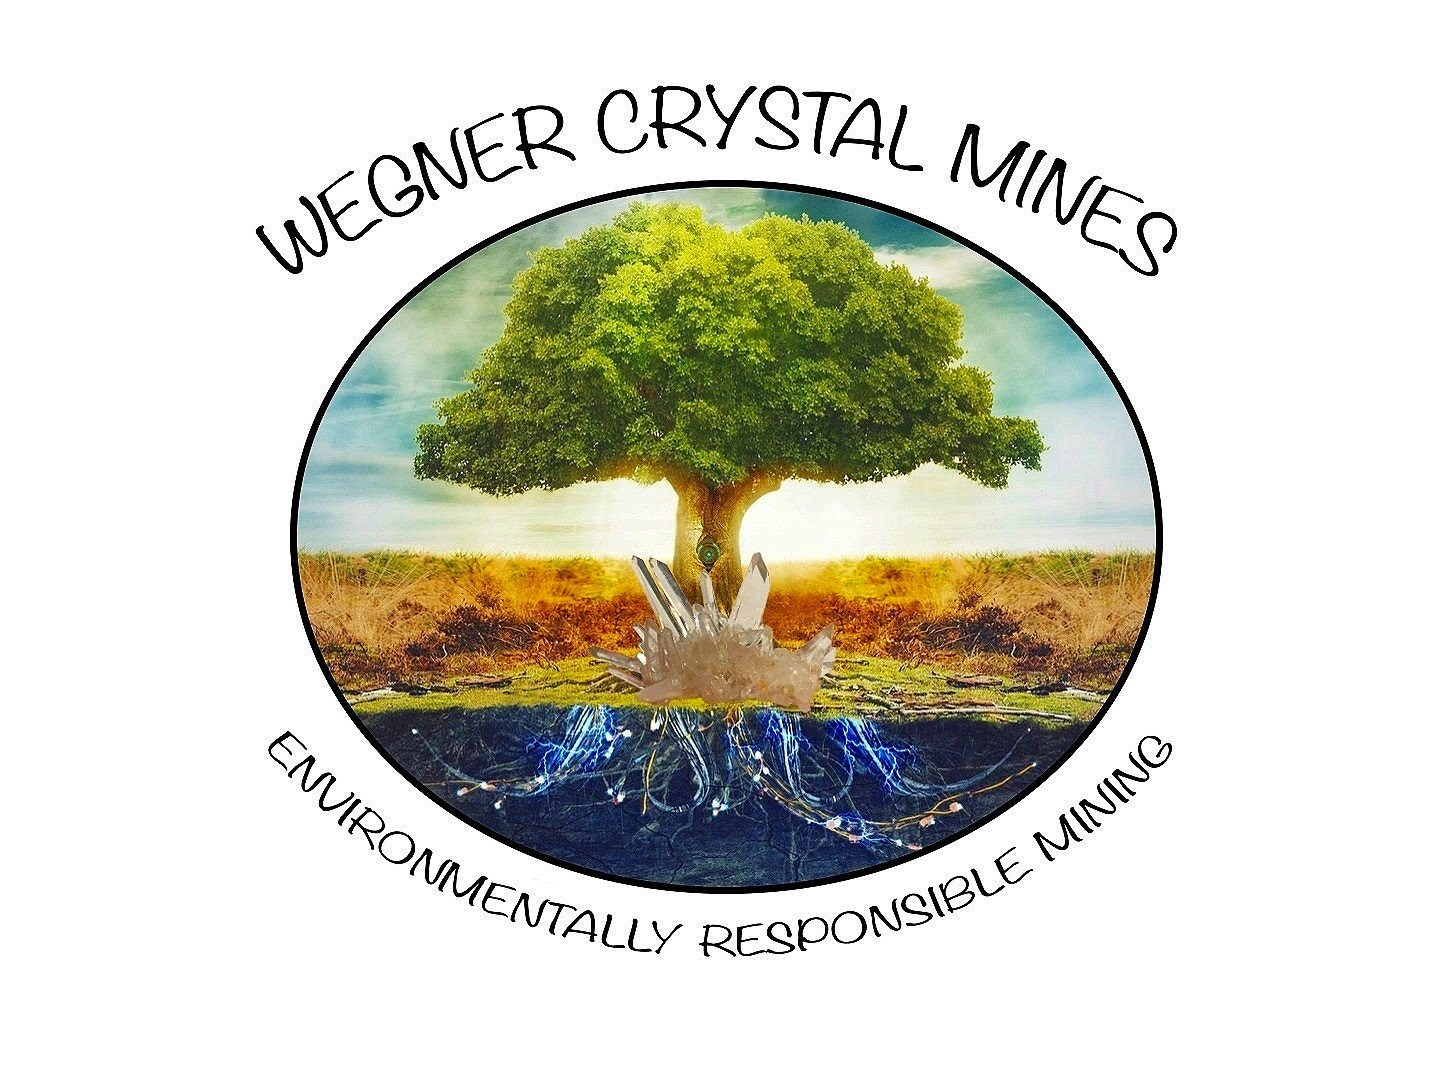 Wegner Quartz Crystal Mines - World Famous Phantom Crystal Mine